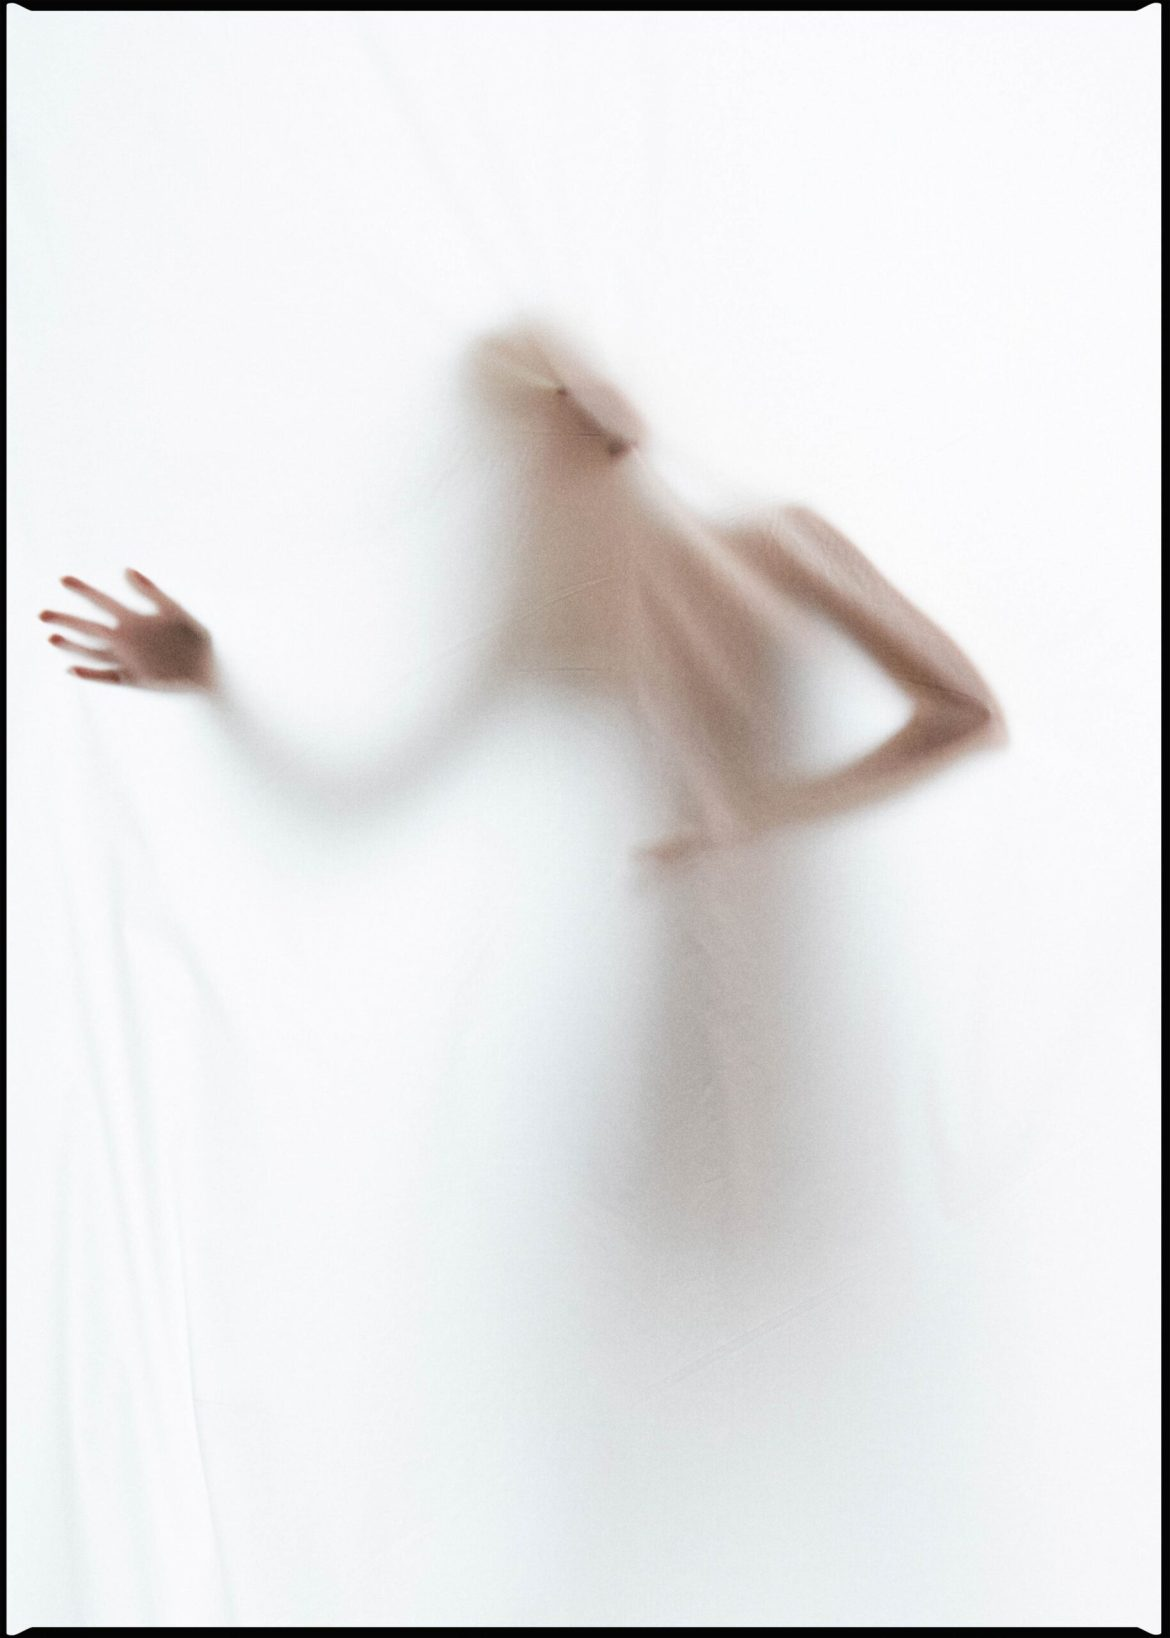 Silence photo series with Abstract figurative human bod forms